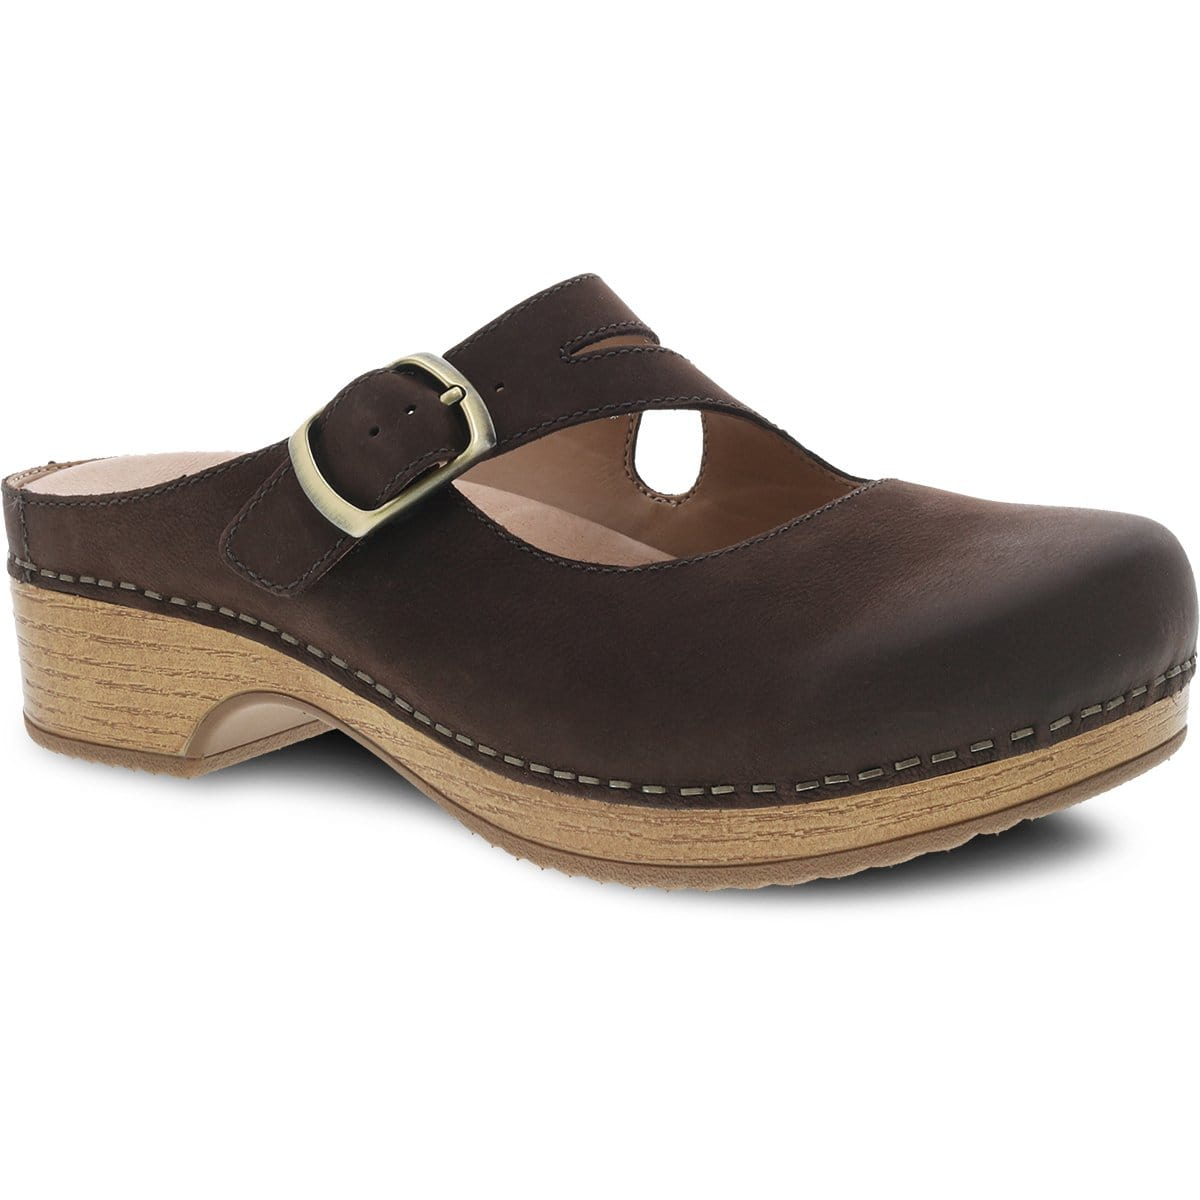 Dansko Britney Mary Jane Leather Mule Clog | Simons Shoes